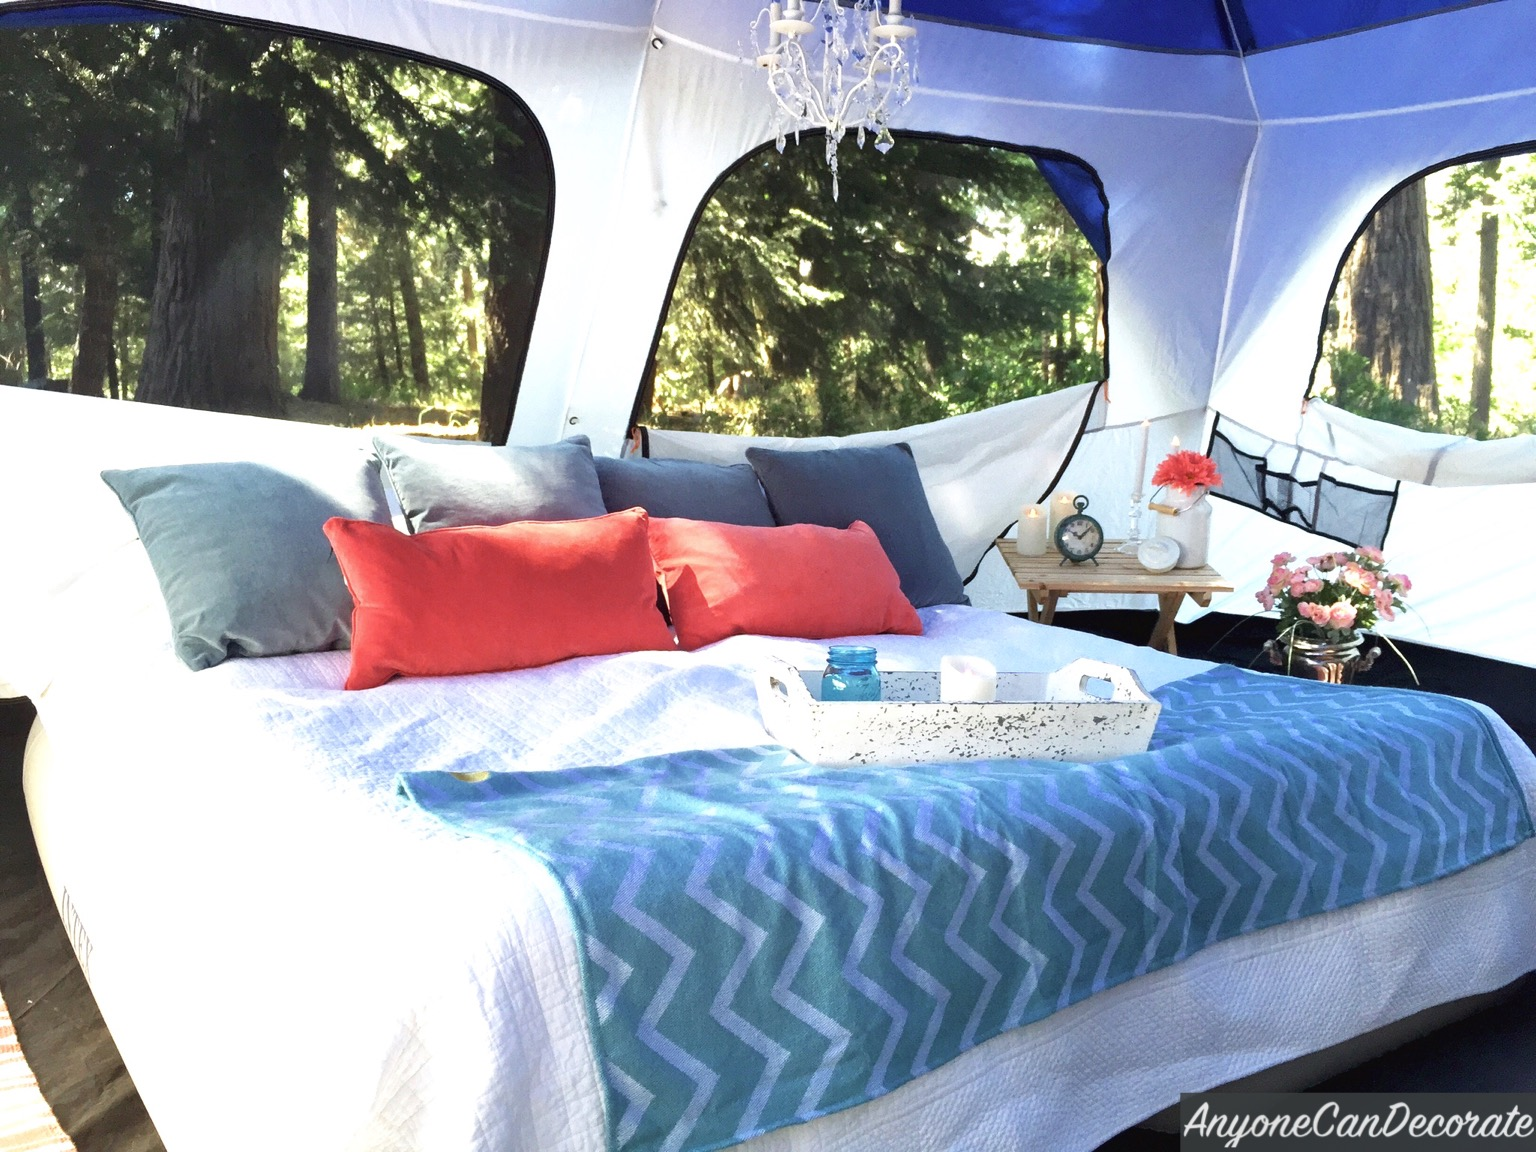 & Anyone Can Decorate: Gone Glamping - A DIY Glamorous Camping Trip